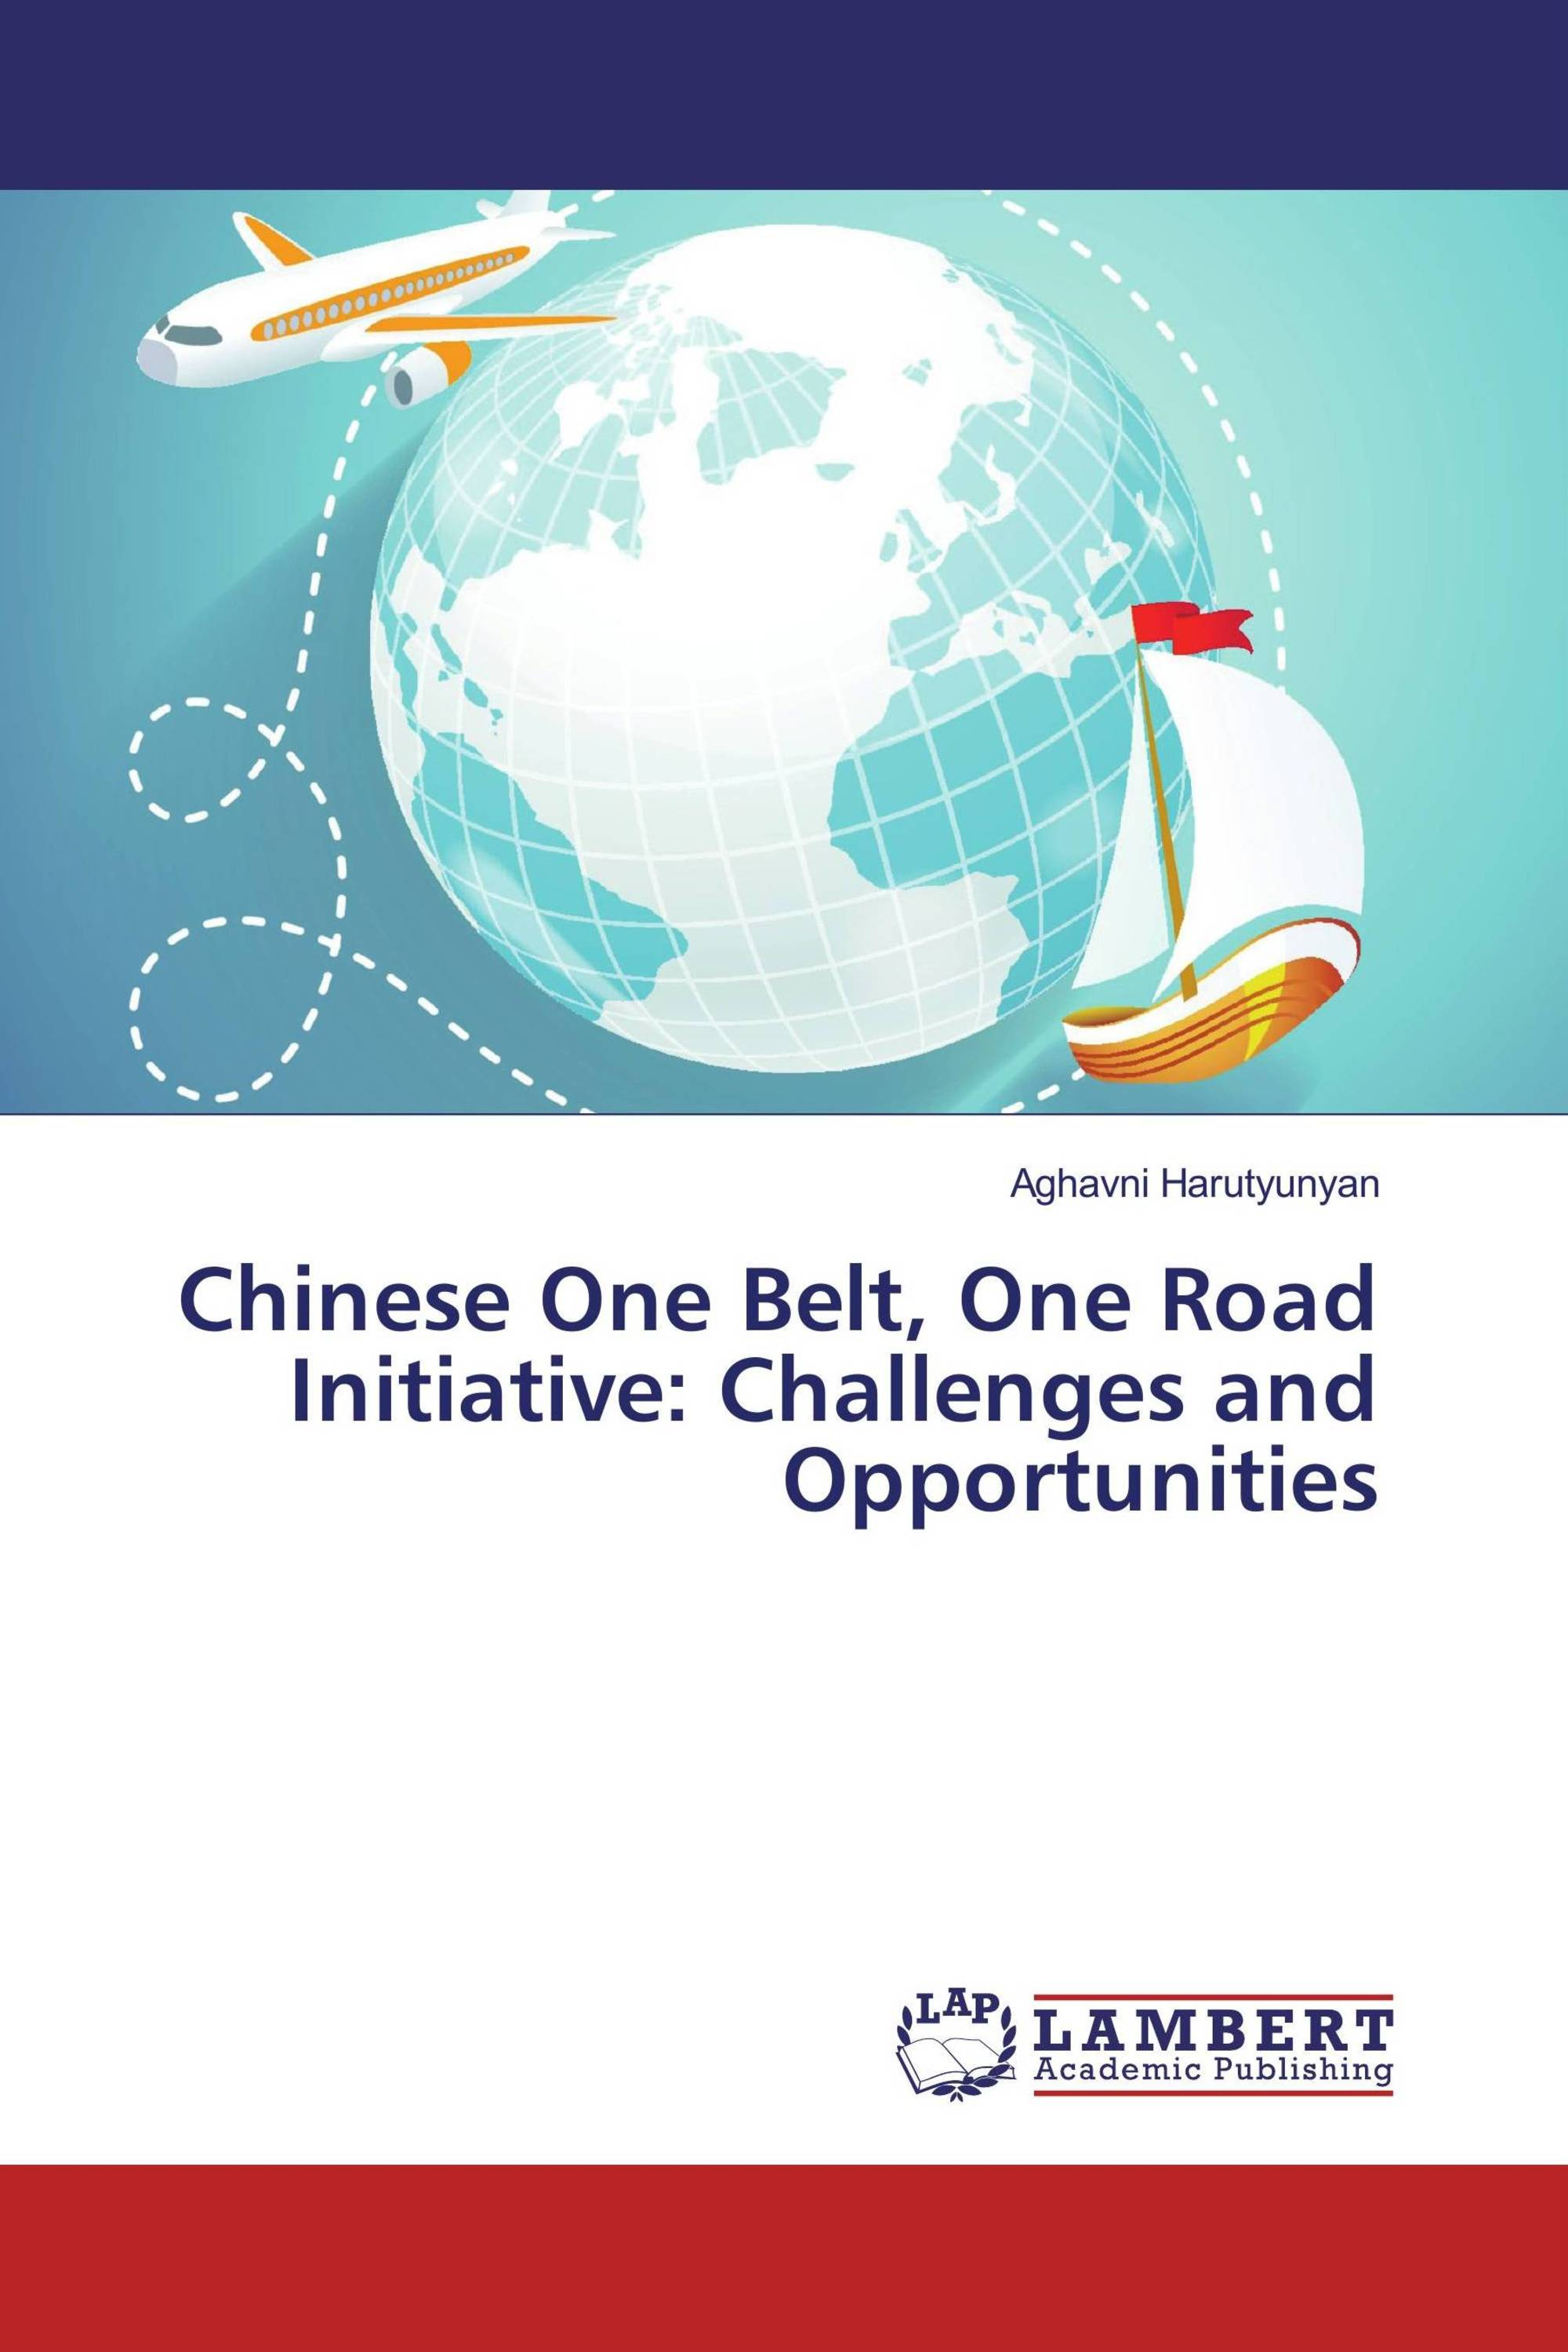 Chinese One Belt, One Road Initiative: Challenges and Opportunities